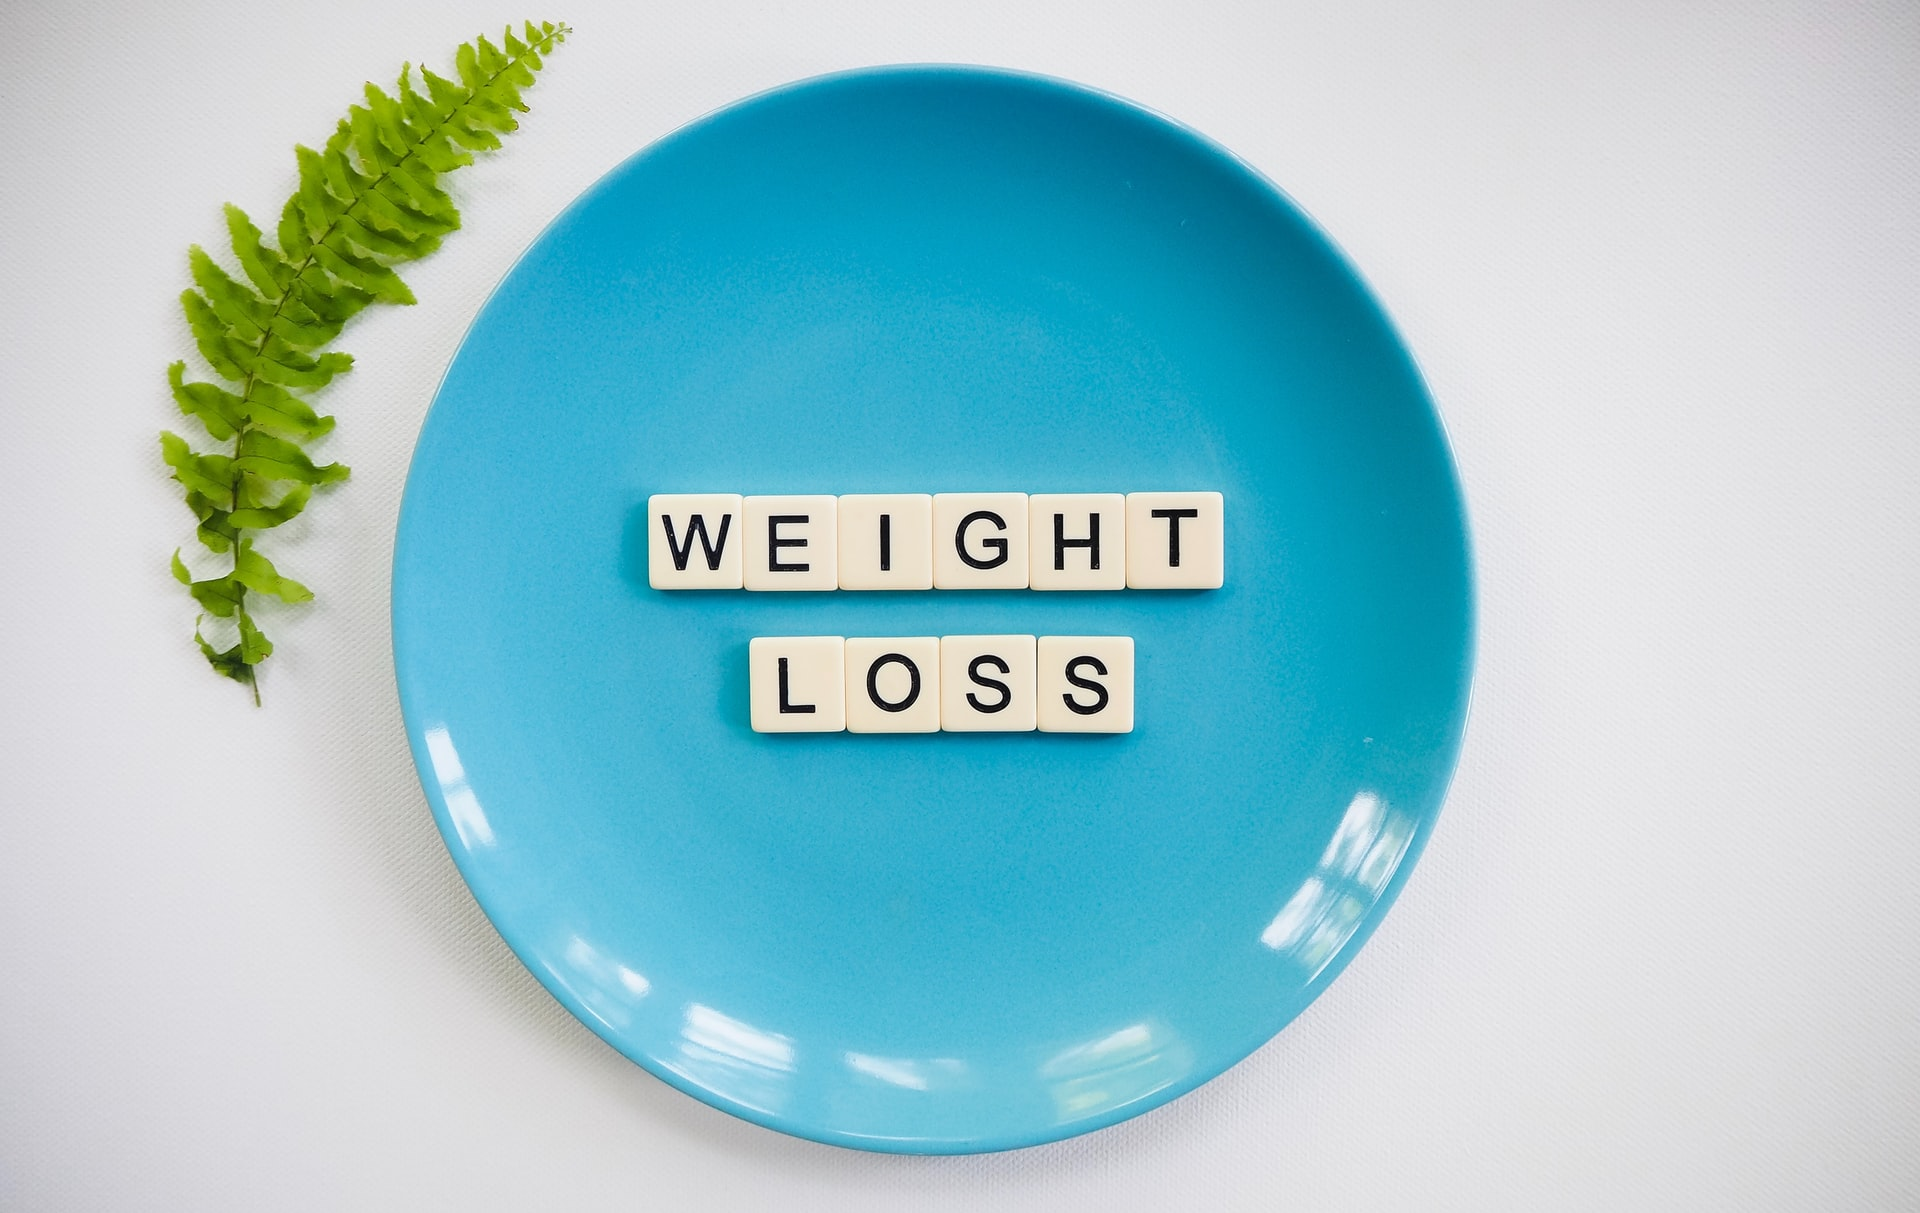 45% of people globally are currently trying to lose weight - Ipsos Brandspurng